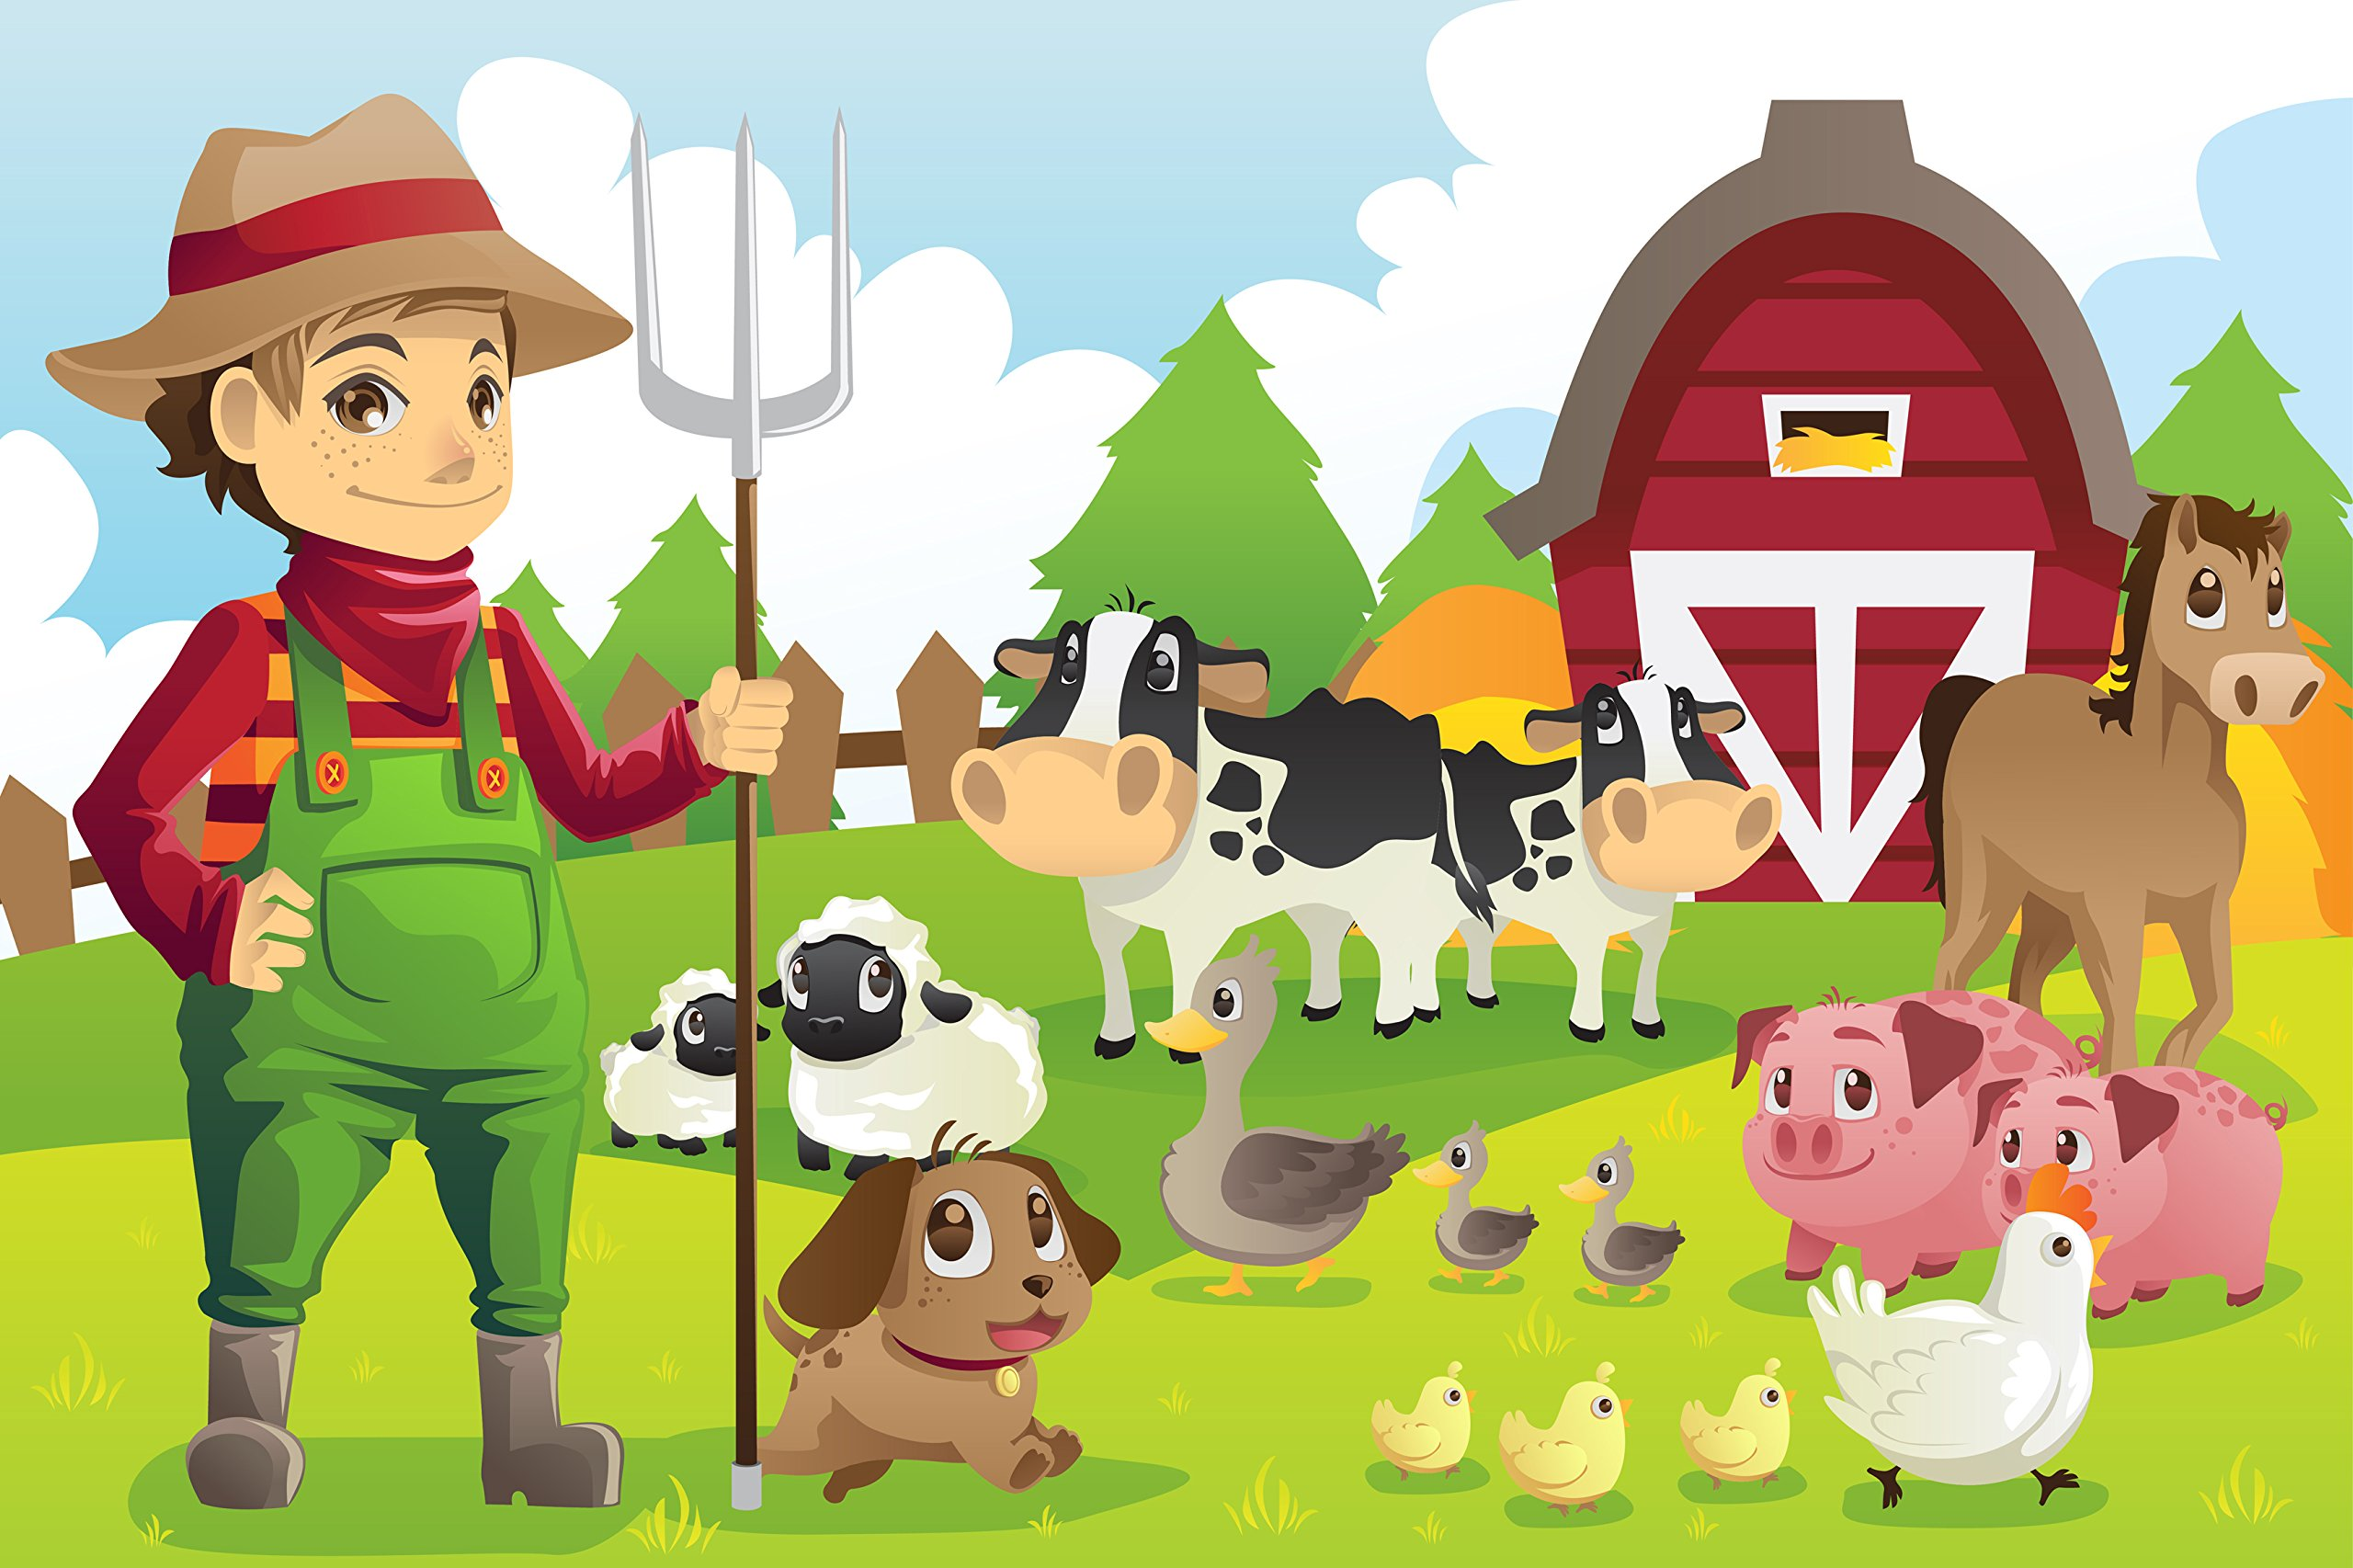 Child Farmer with Farm Animals Edible Icing Image for 1/4 sheet cake by Whimsical Practicality